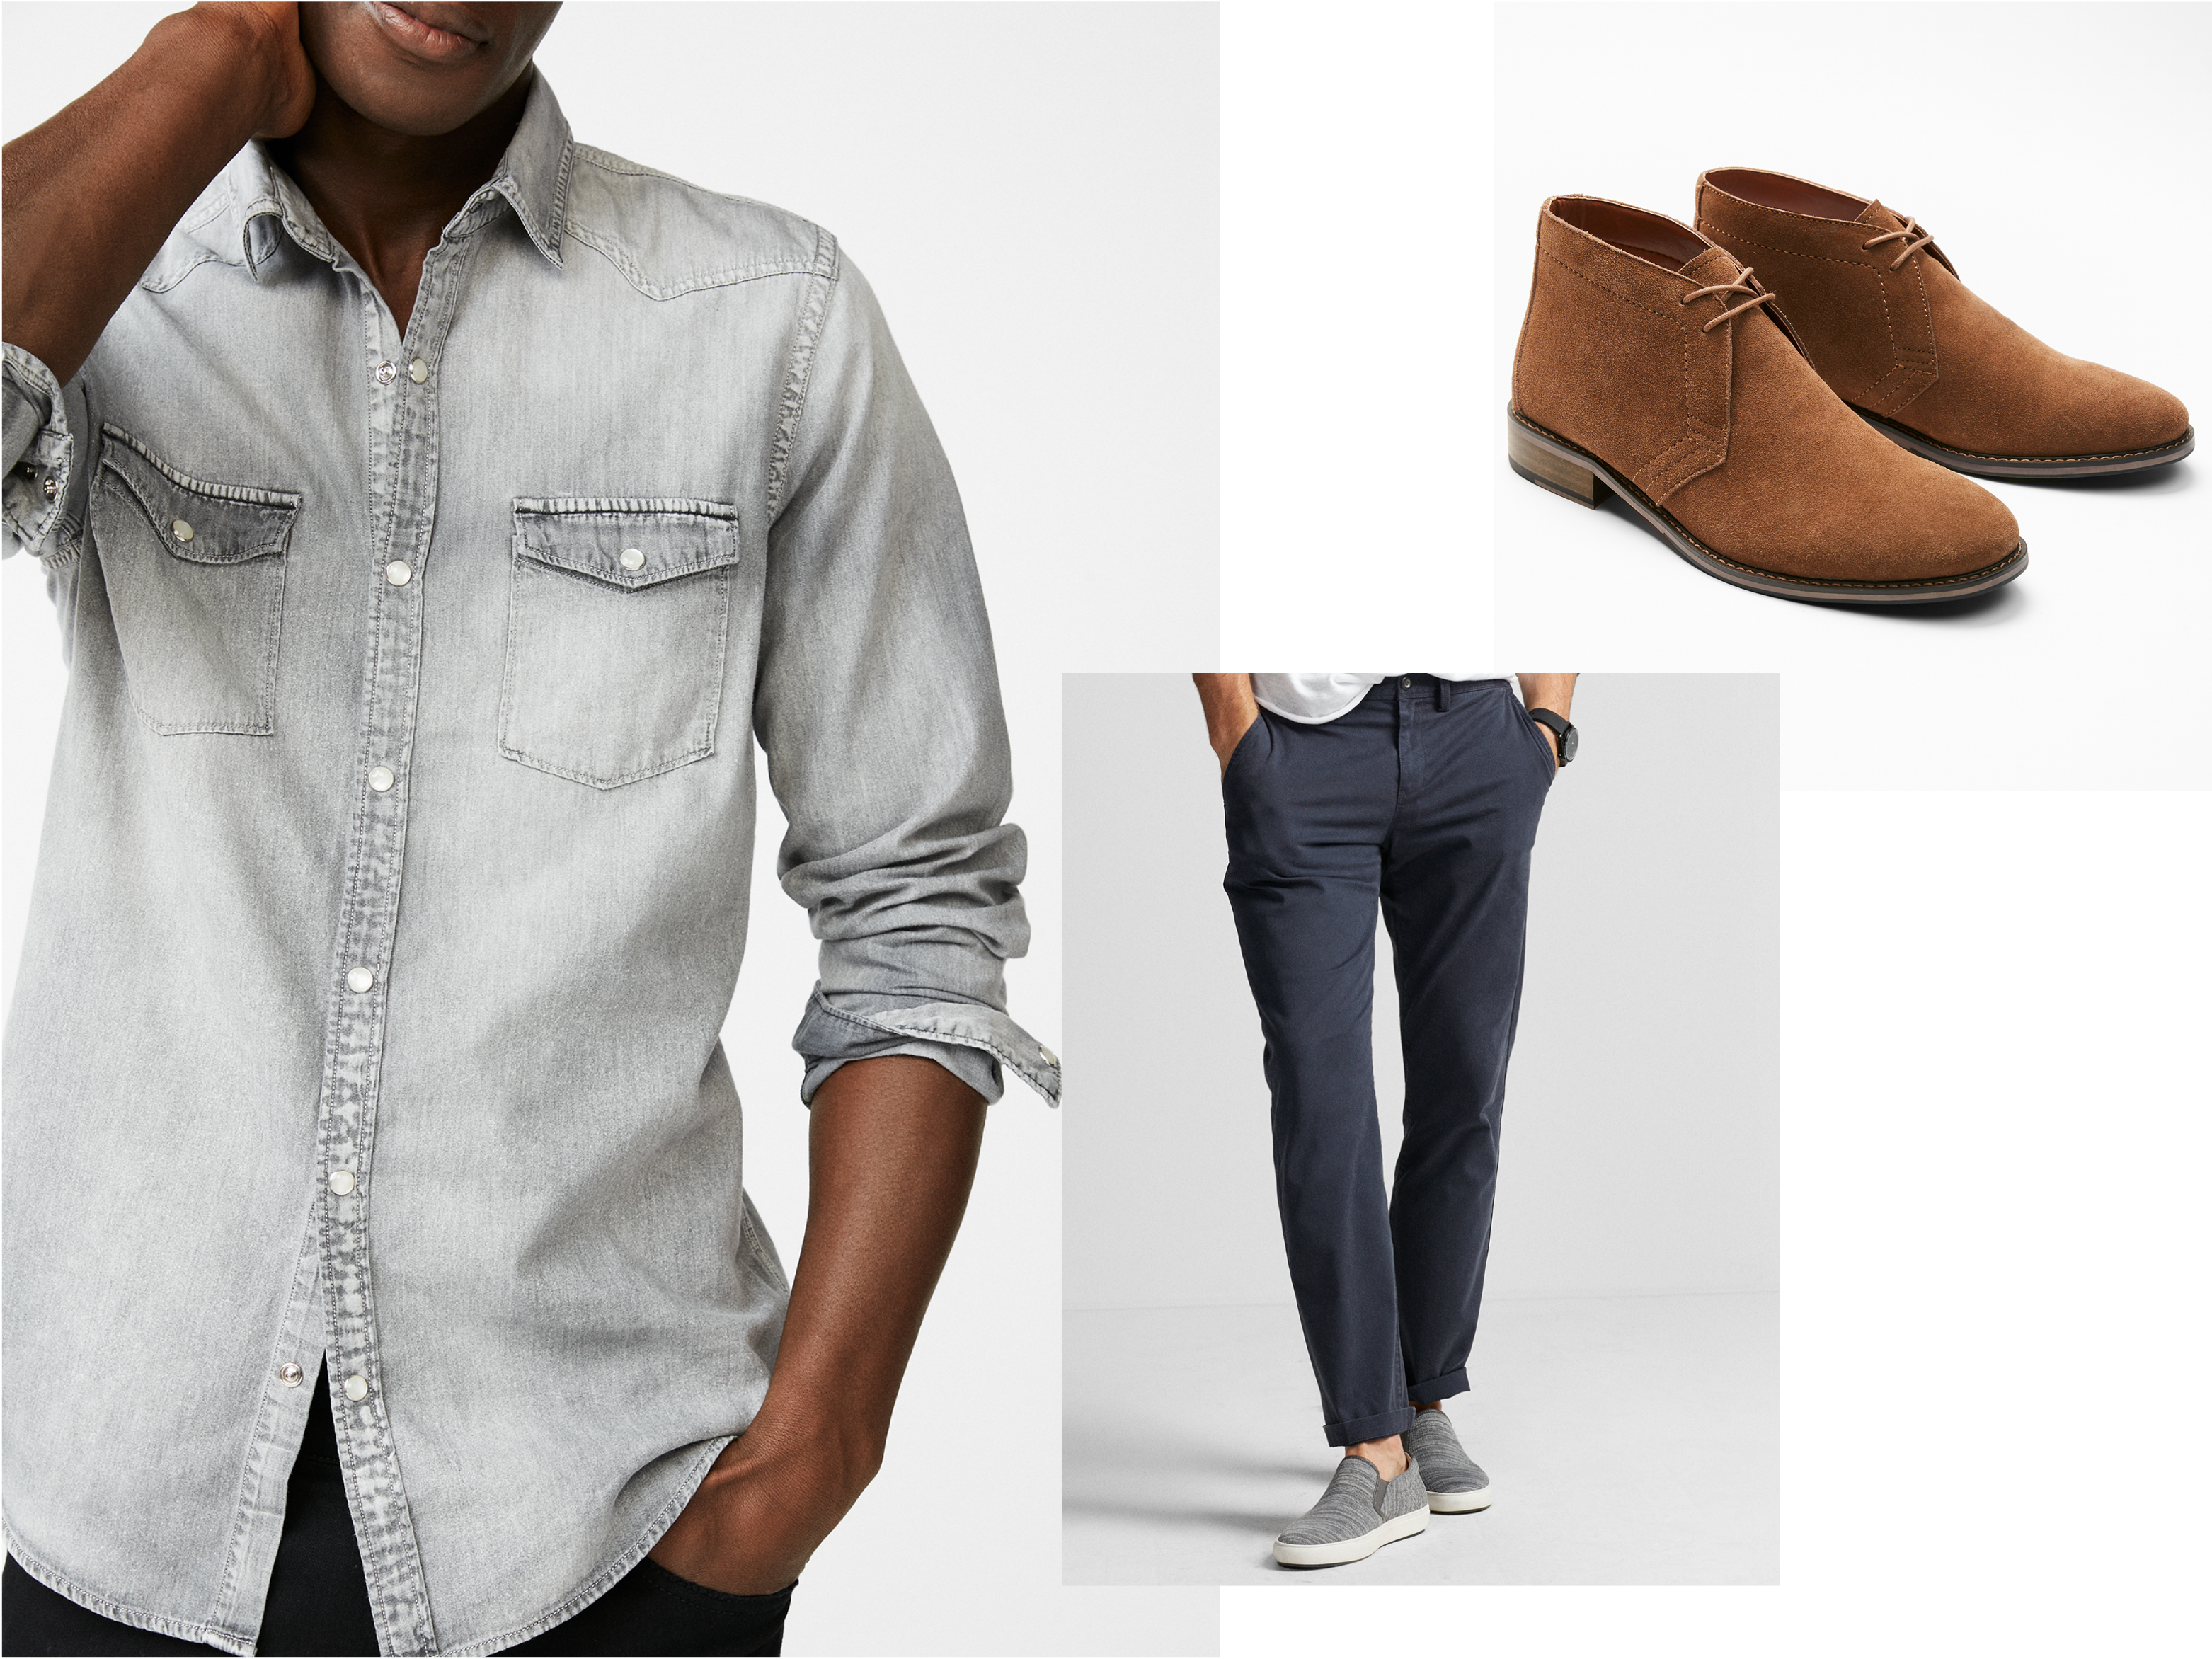 gray-denim-button-up-chinos-suede-boots